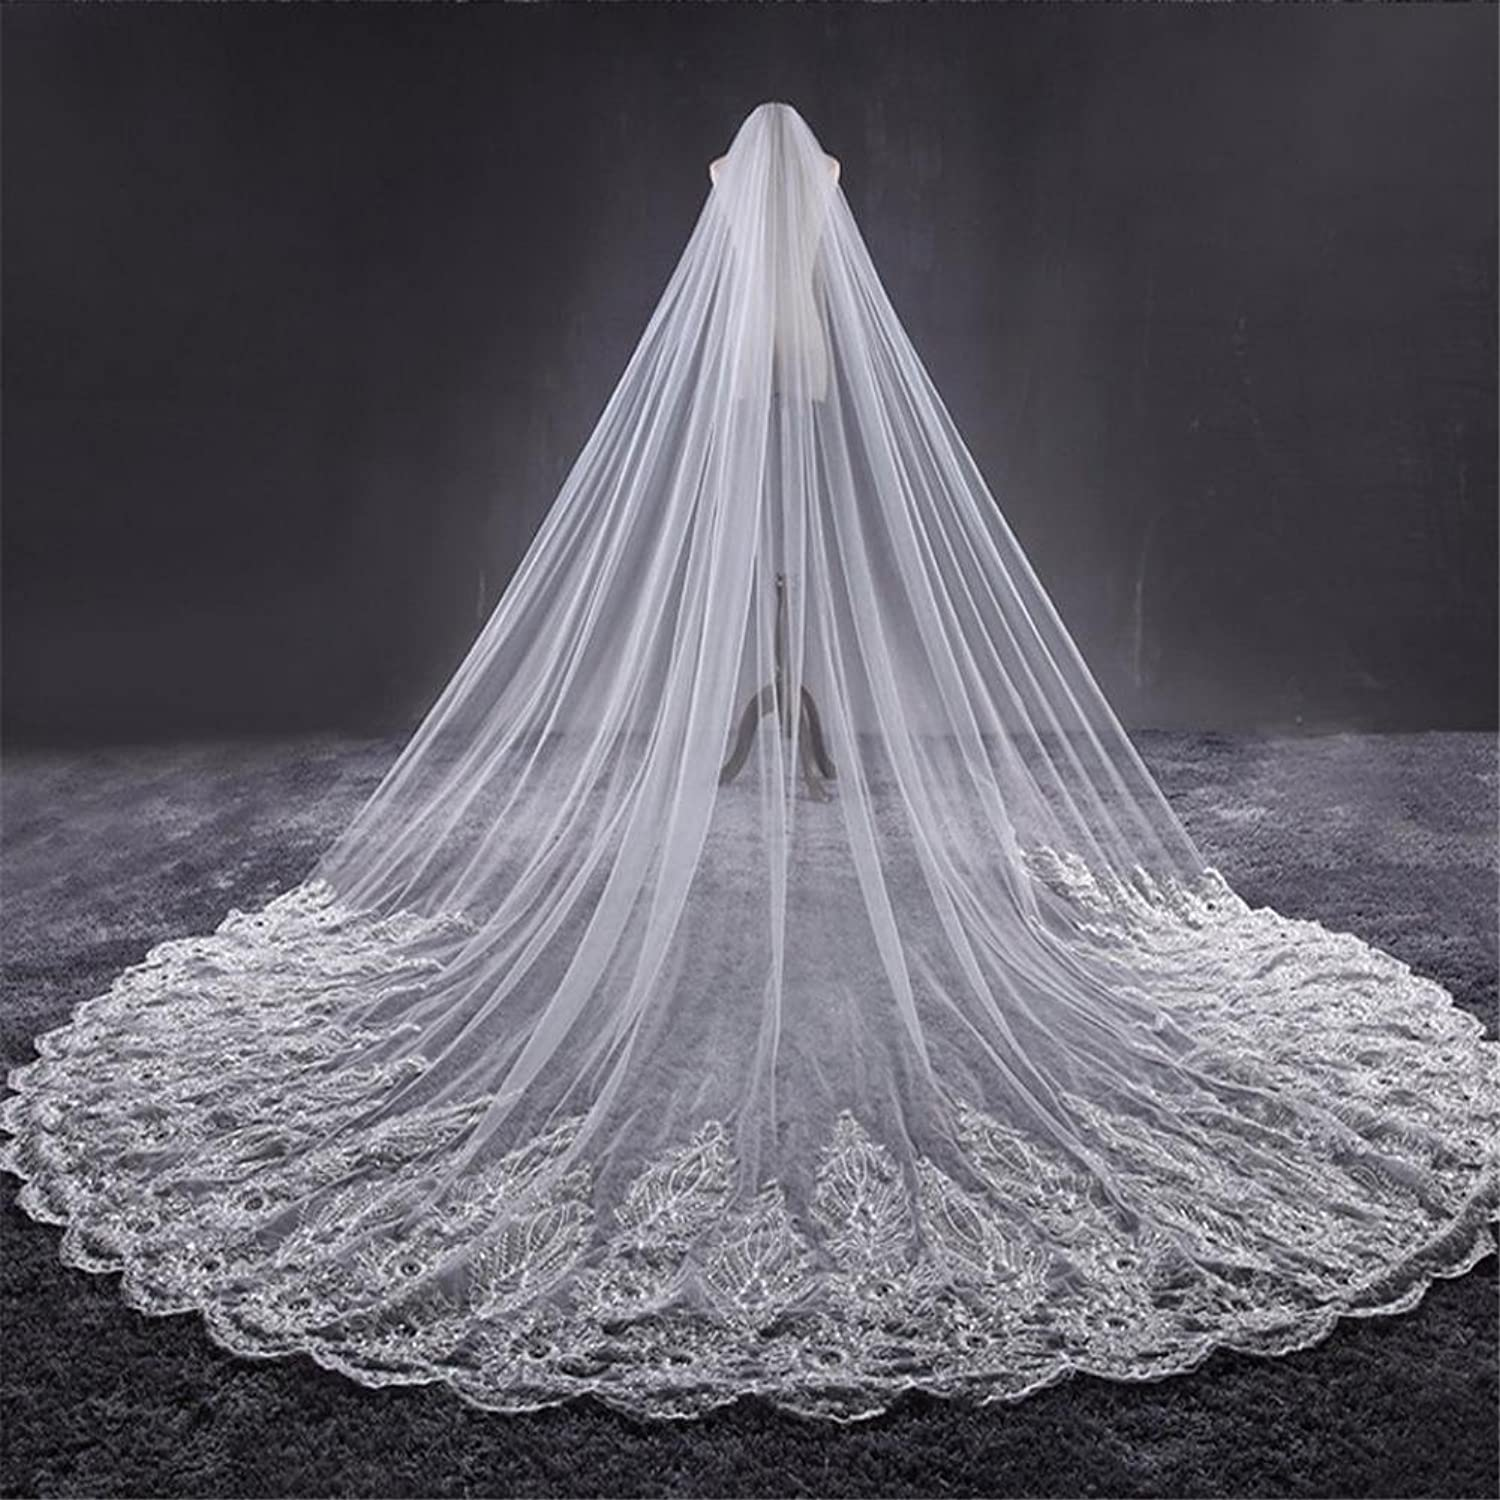 Bridal Veil Cathedral Wedding Veils Long Lace Edge Bride Veil with Comb Wedding Accessories Bride Mantilla Veil